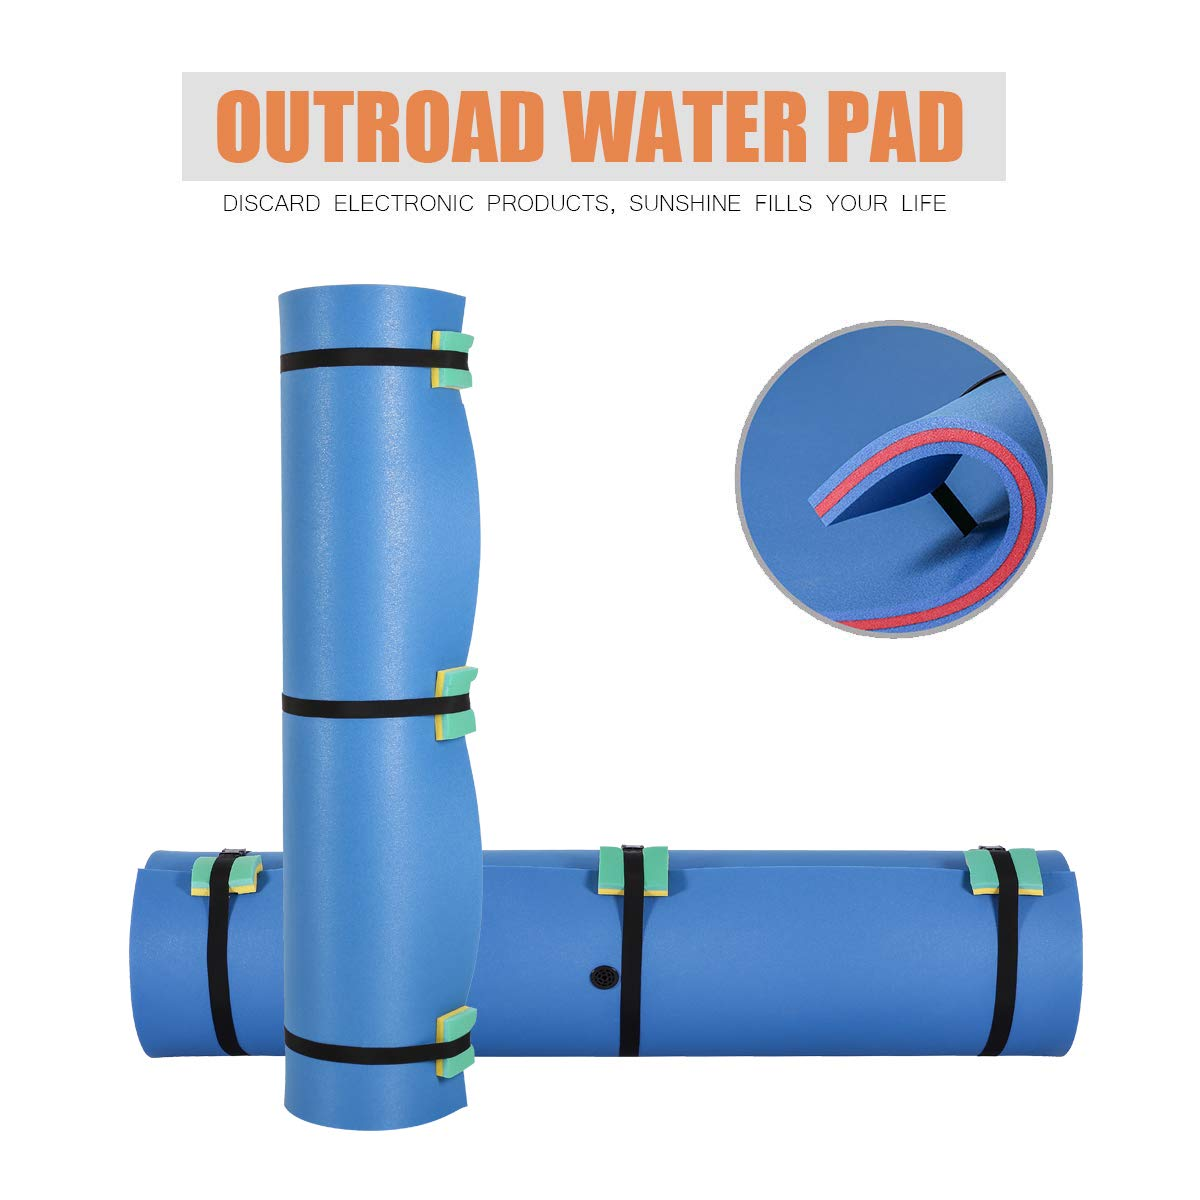 Outroad Floating Mat 12' X 6' - Recreational Floating Foam Pad Adults Kids (Blue)- Lily Pad Used in Ocean/Lake by OUTROAD OUTDOOR CAMPING GARDEN PATIO (Image #4)